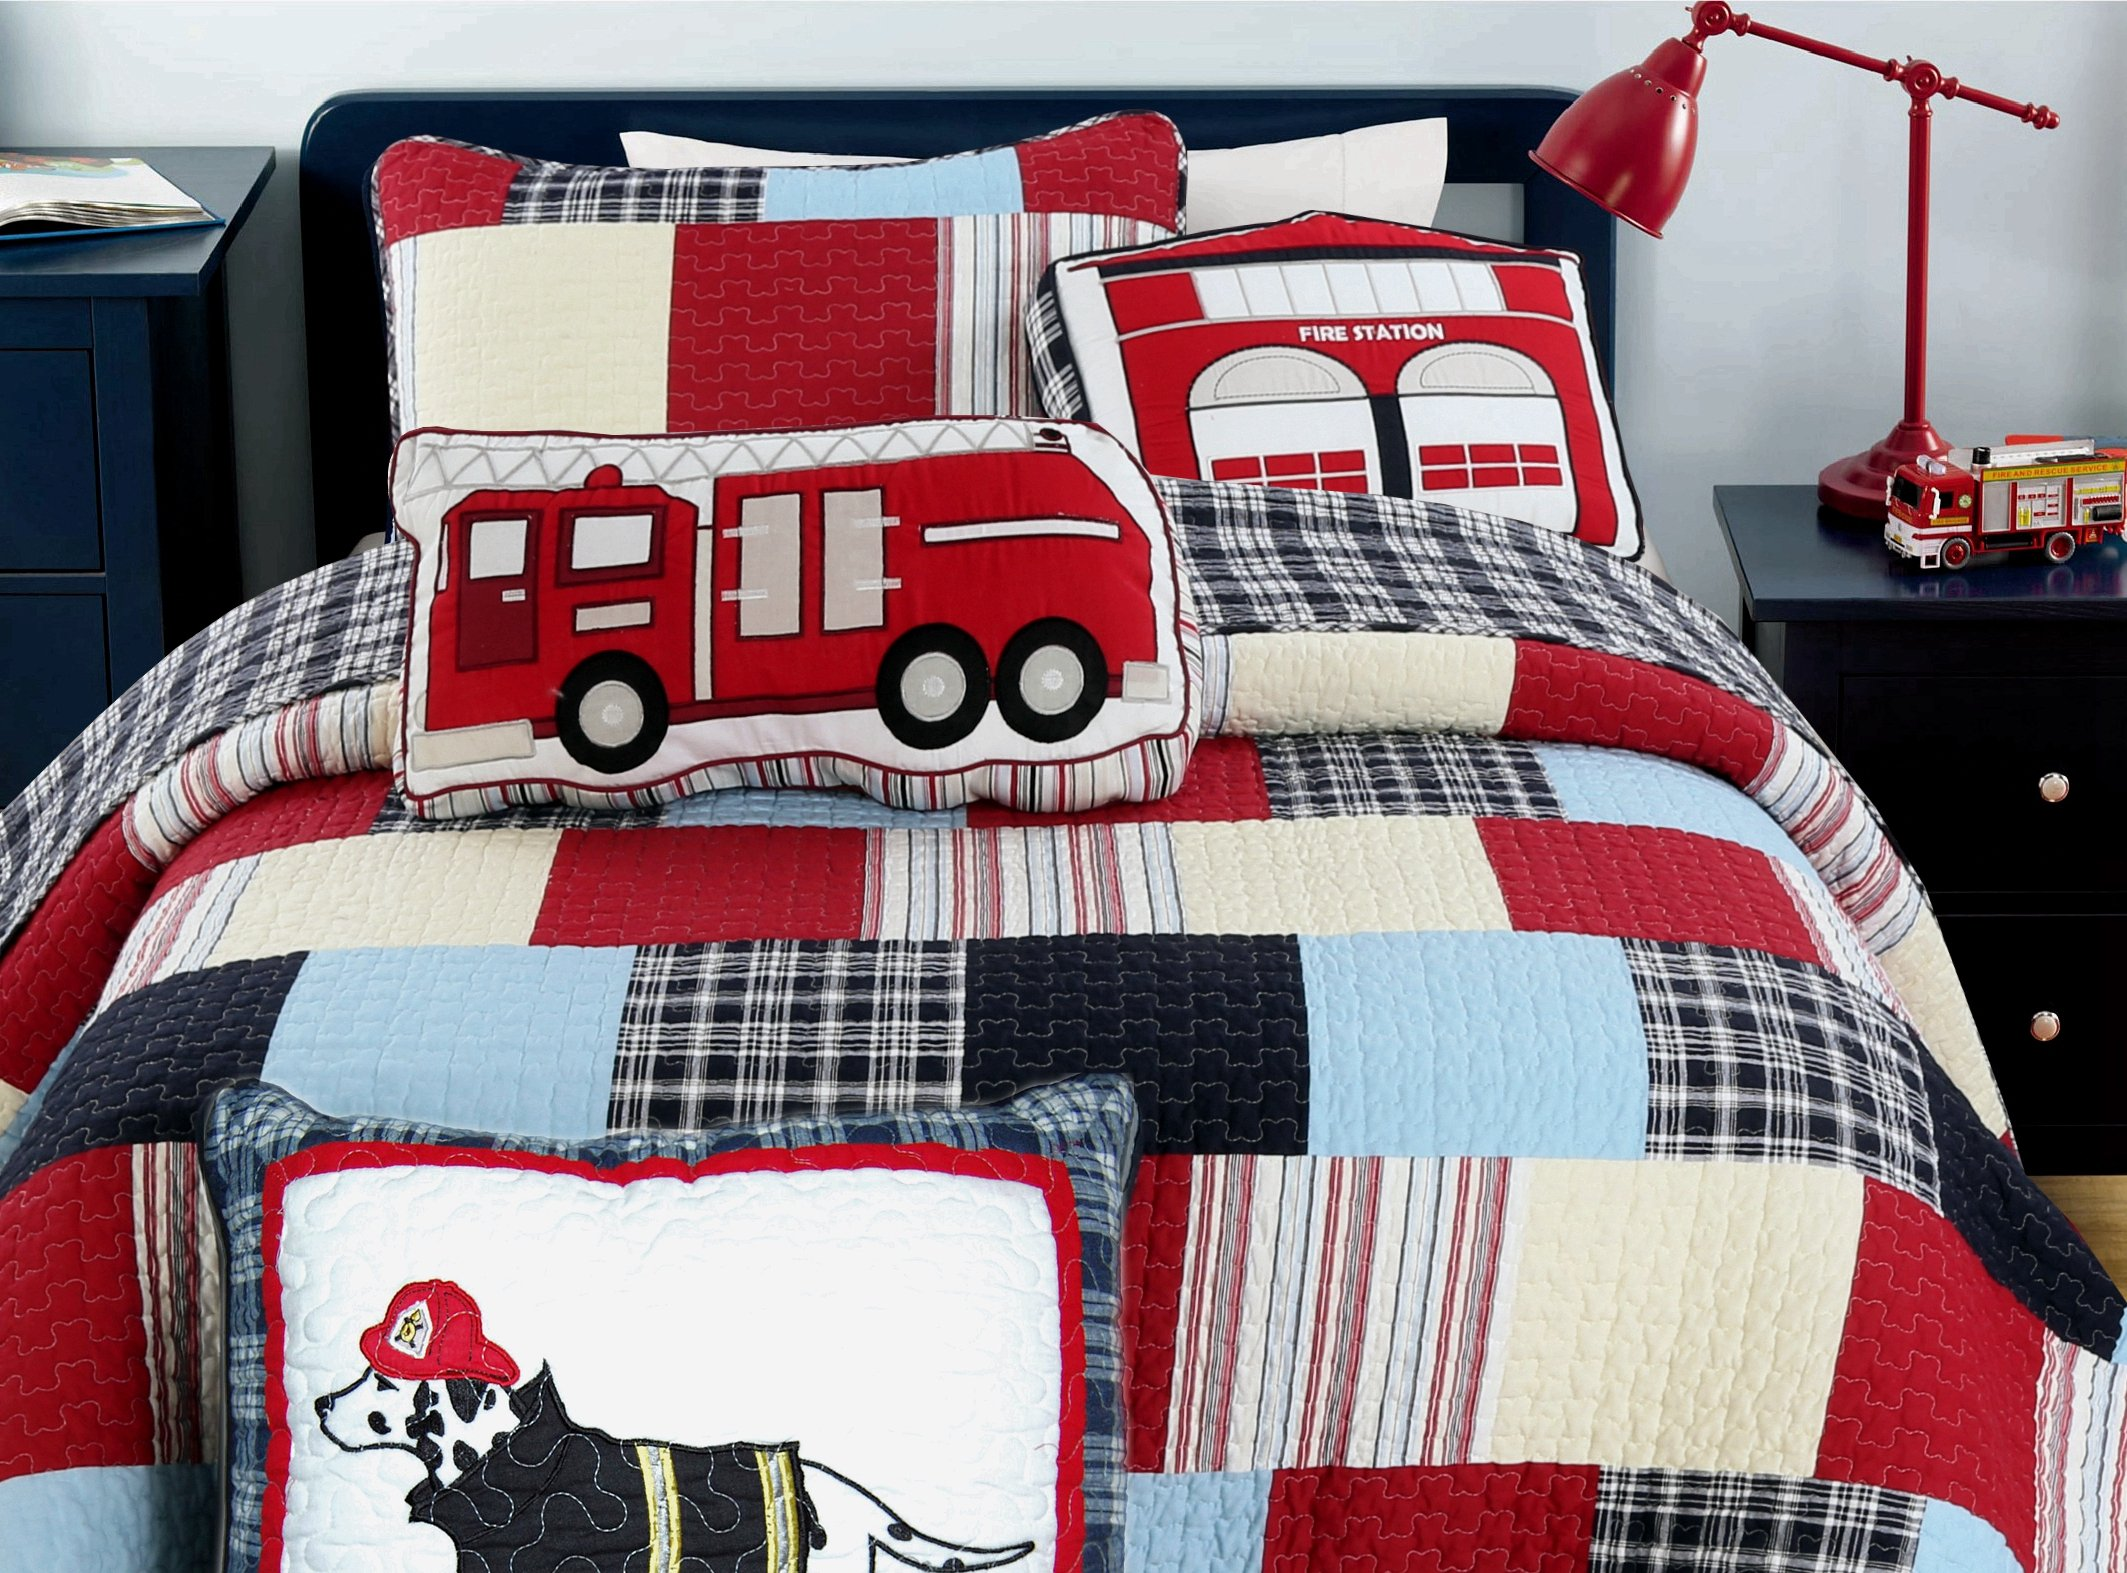 Cozy Line Home Fashion Cars Patchwork Quilt Bedding Set for Boy, 100% COTTON Navy/Blue/Red Grid Stripe Printed Reversible Bedspread Coverlet,Gifts for Kids(Thomas Firetruck Patchwork, Queen - 3 piece)